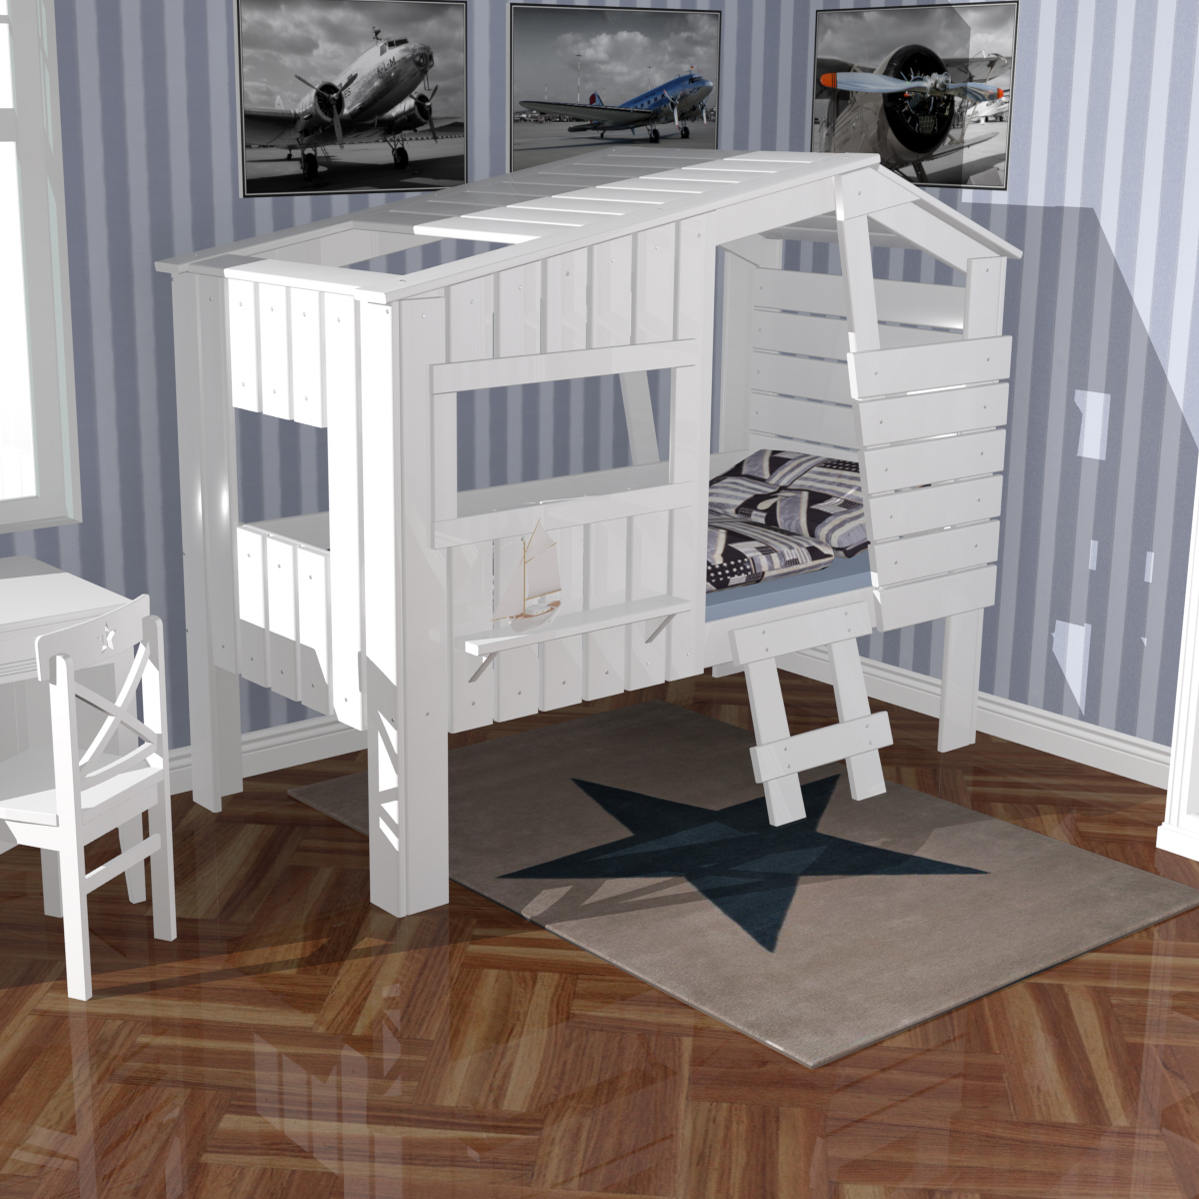 h ttenbett spielbett strandhaus weiss massivholz 90x200cm g nstig online kaufen. Black Bedroom Furniture Sets. Home Design Ideas